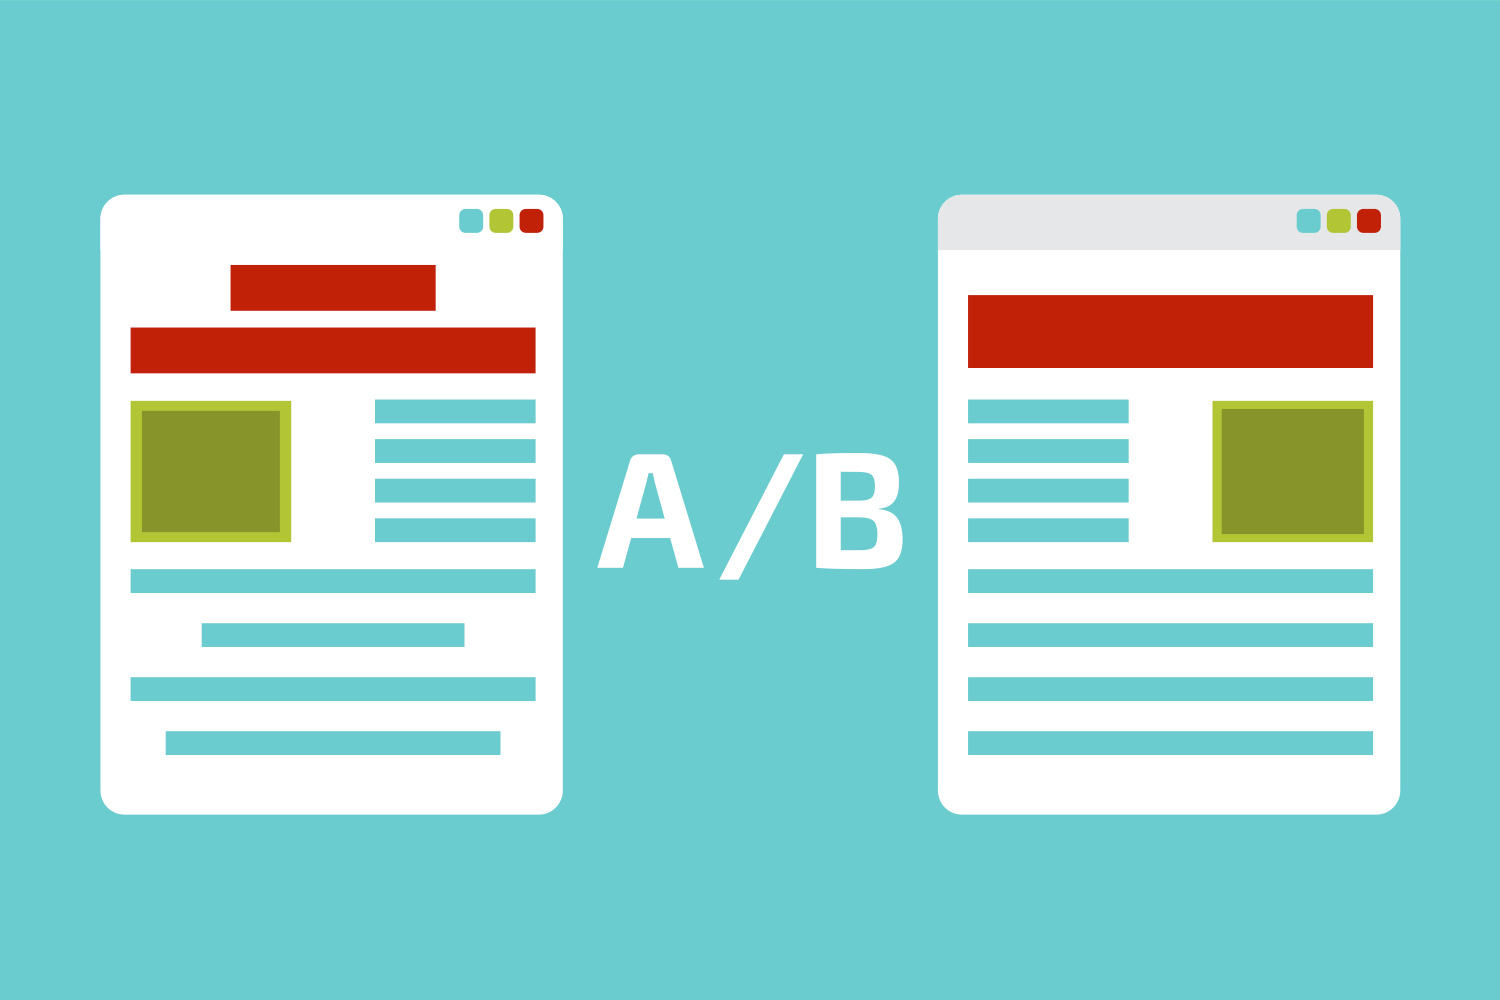 Illustration of an A/B website test